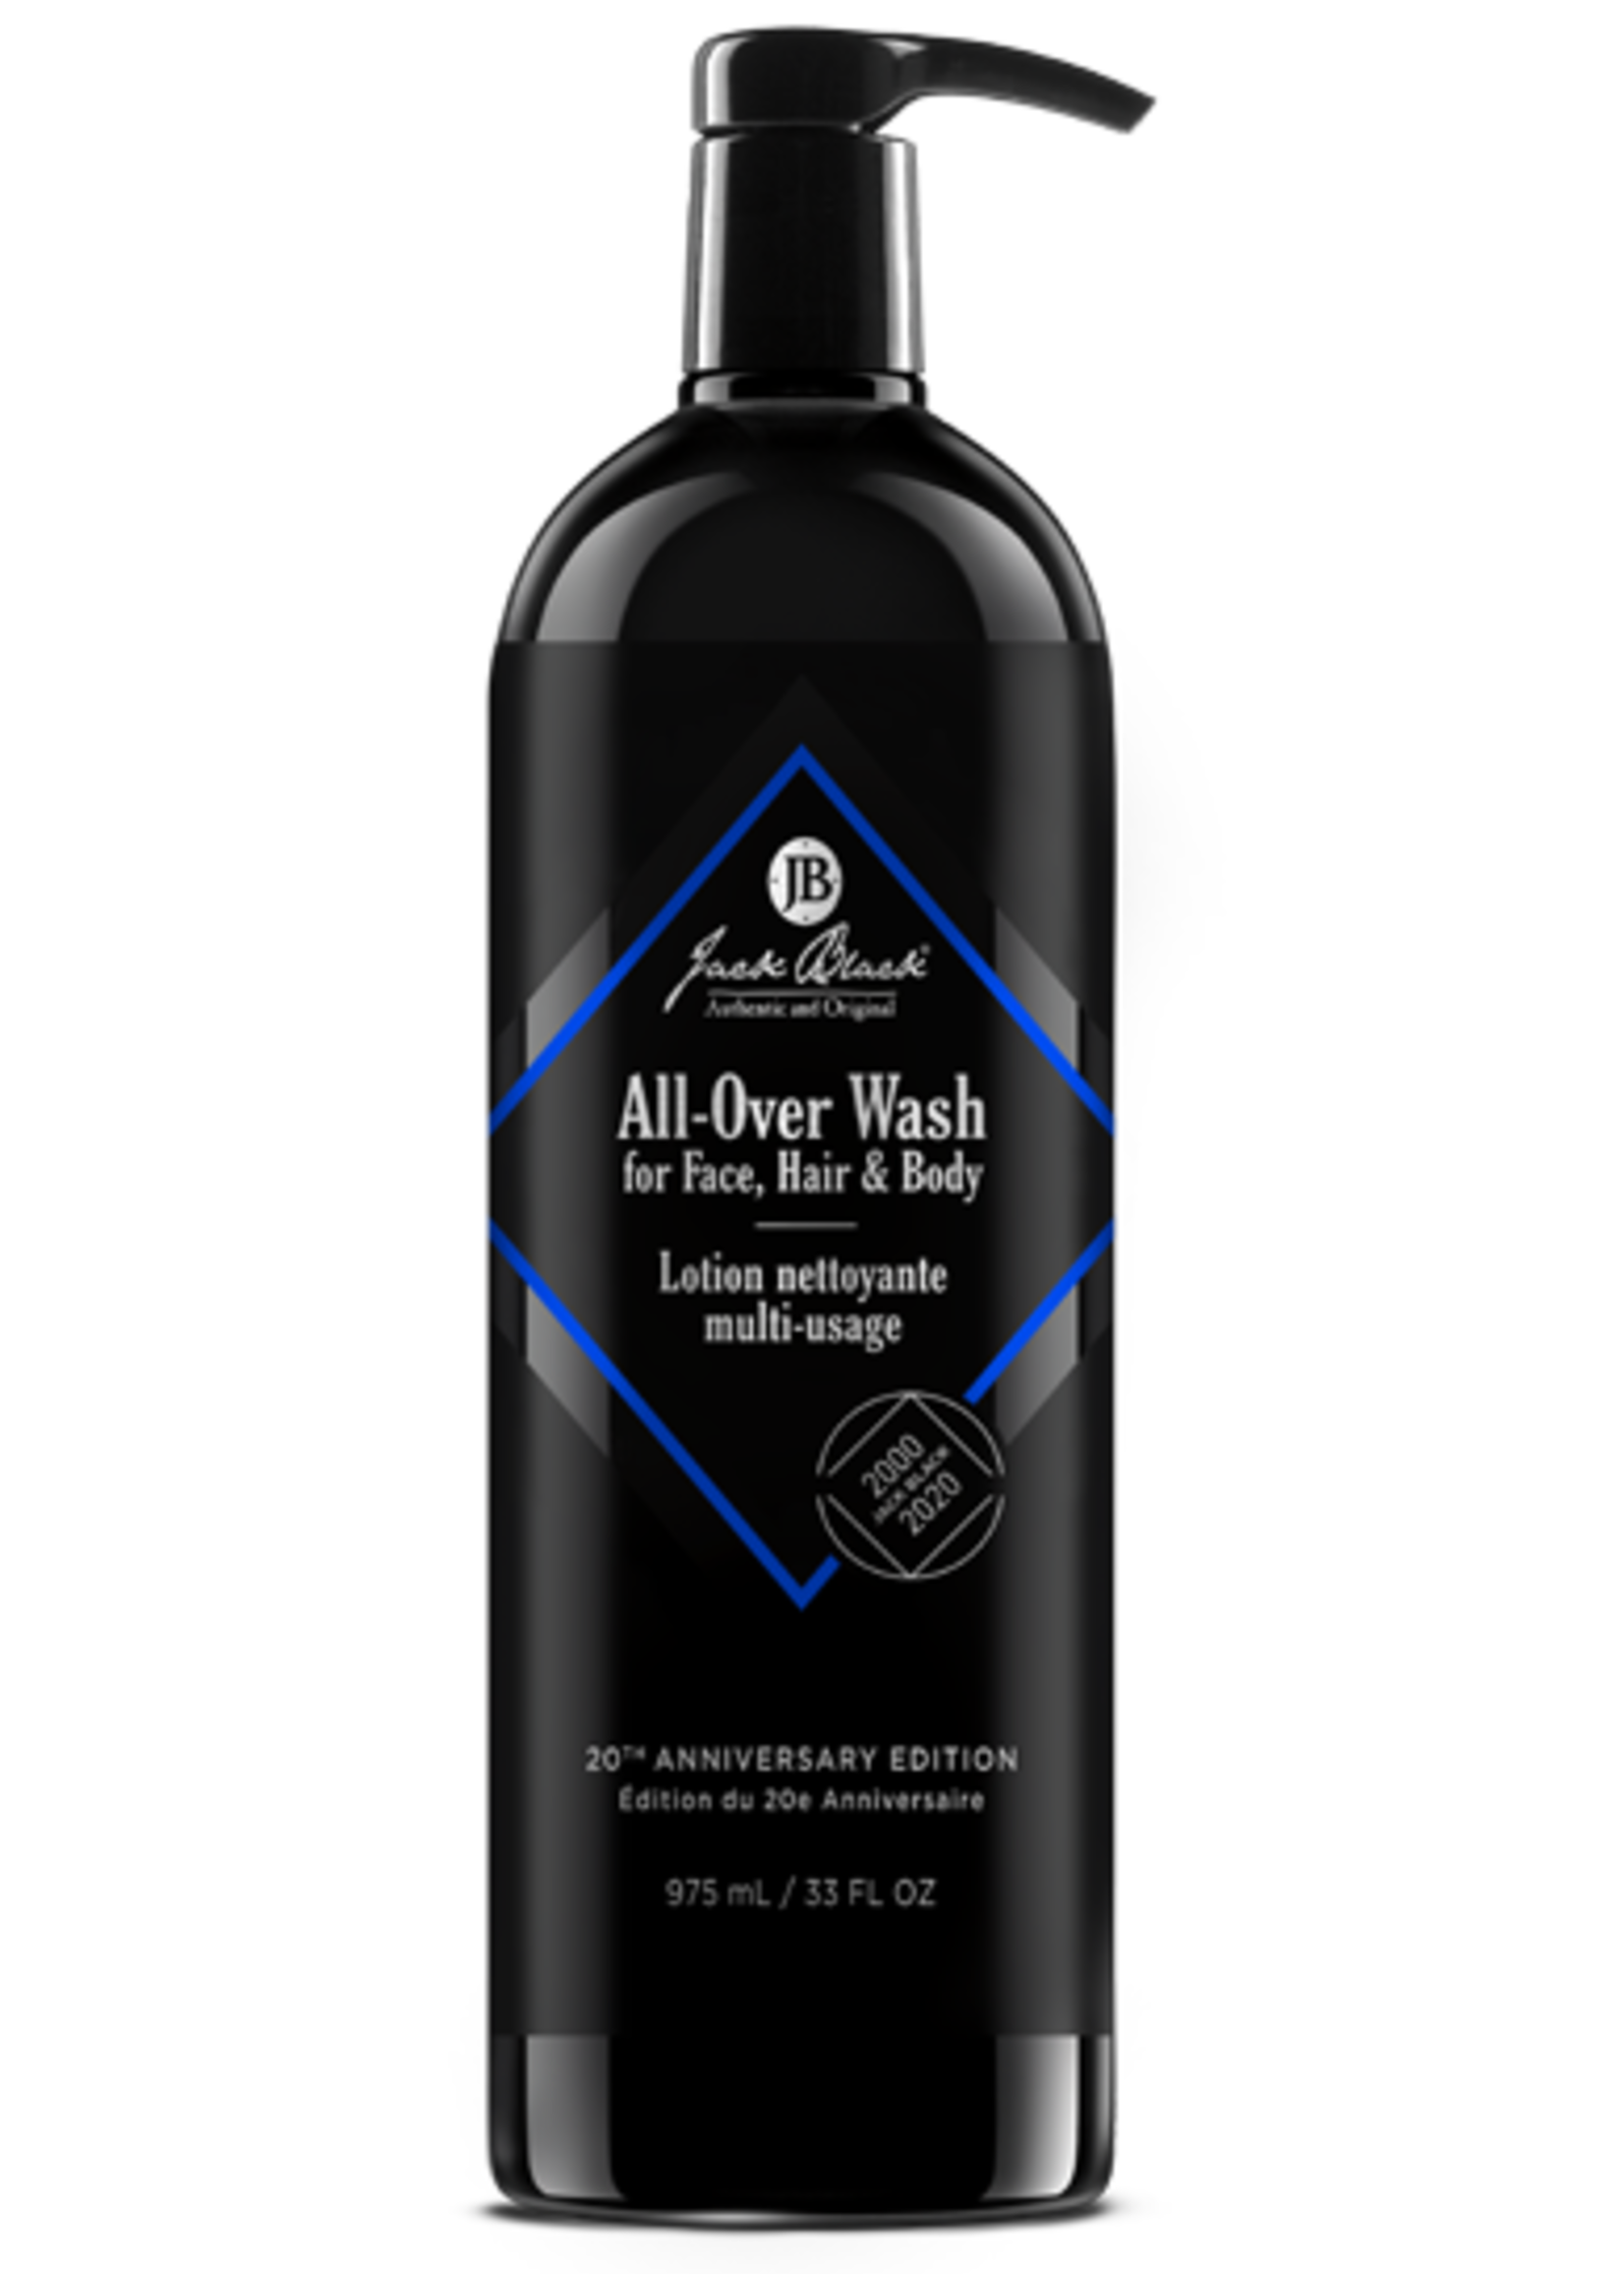 Jack Black All-Over Wash 20th Anniversary Energizing Cleanser 33 oz